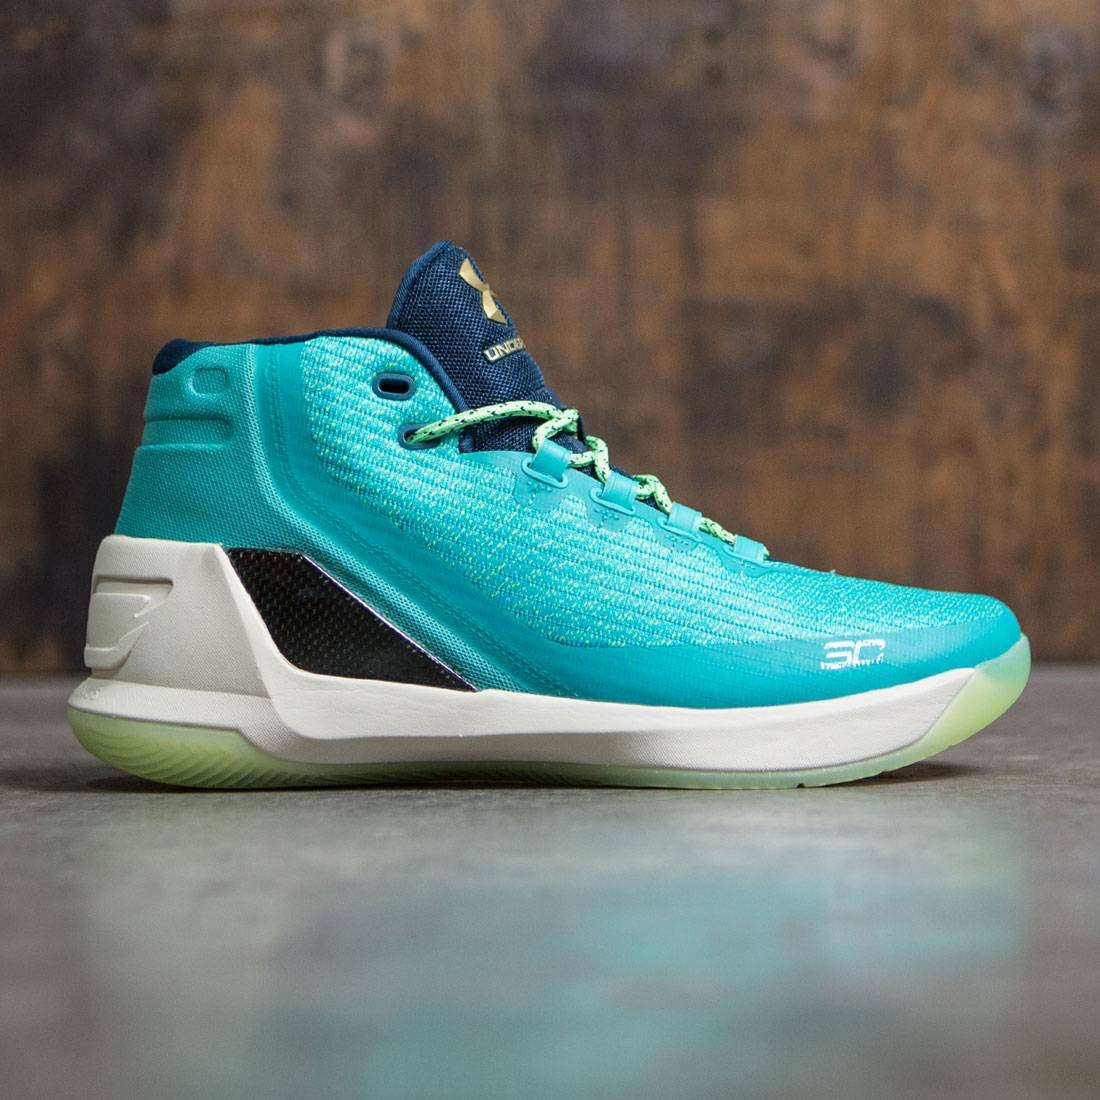 Under Armour Men Curry 3 - Reign Water blue baby blue c12c9e2d2